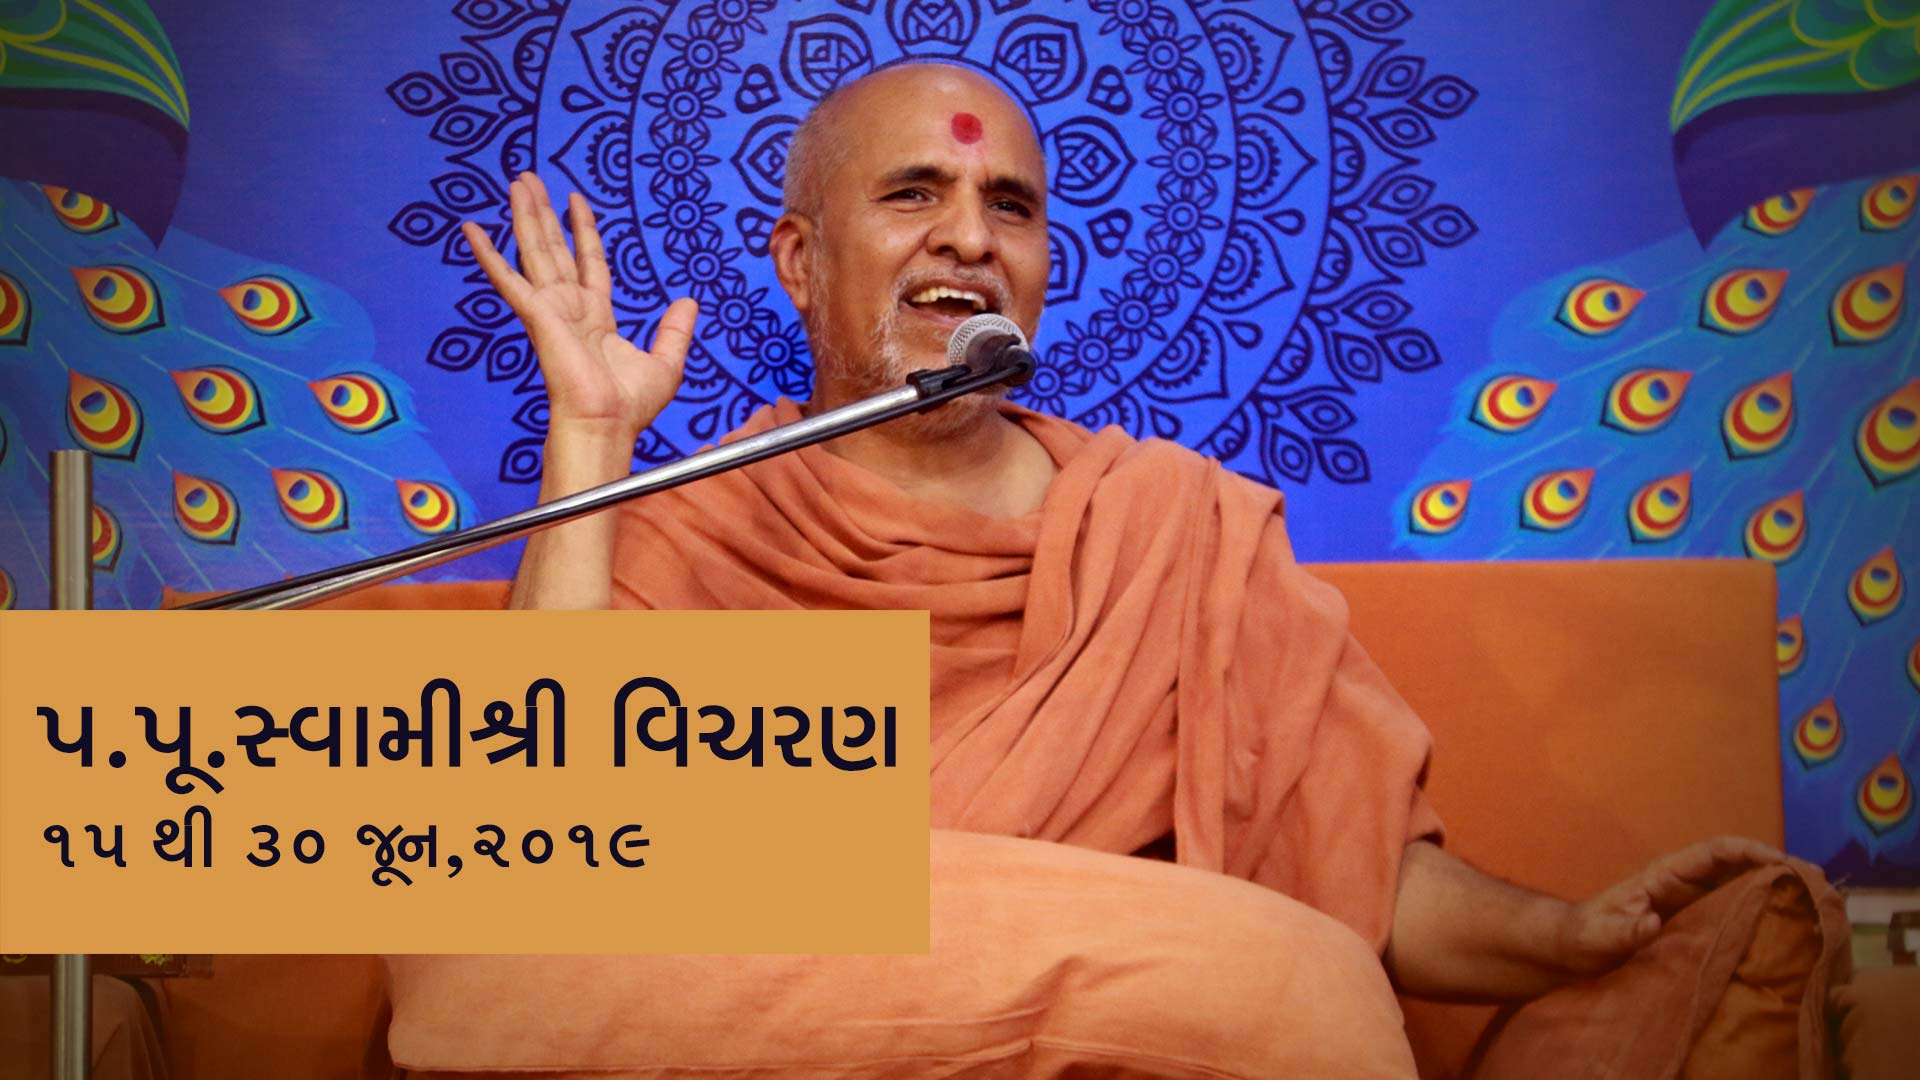 HH Swamishri Vicharan | 15 to 30 June, 2019